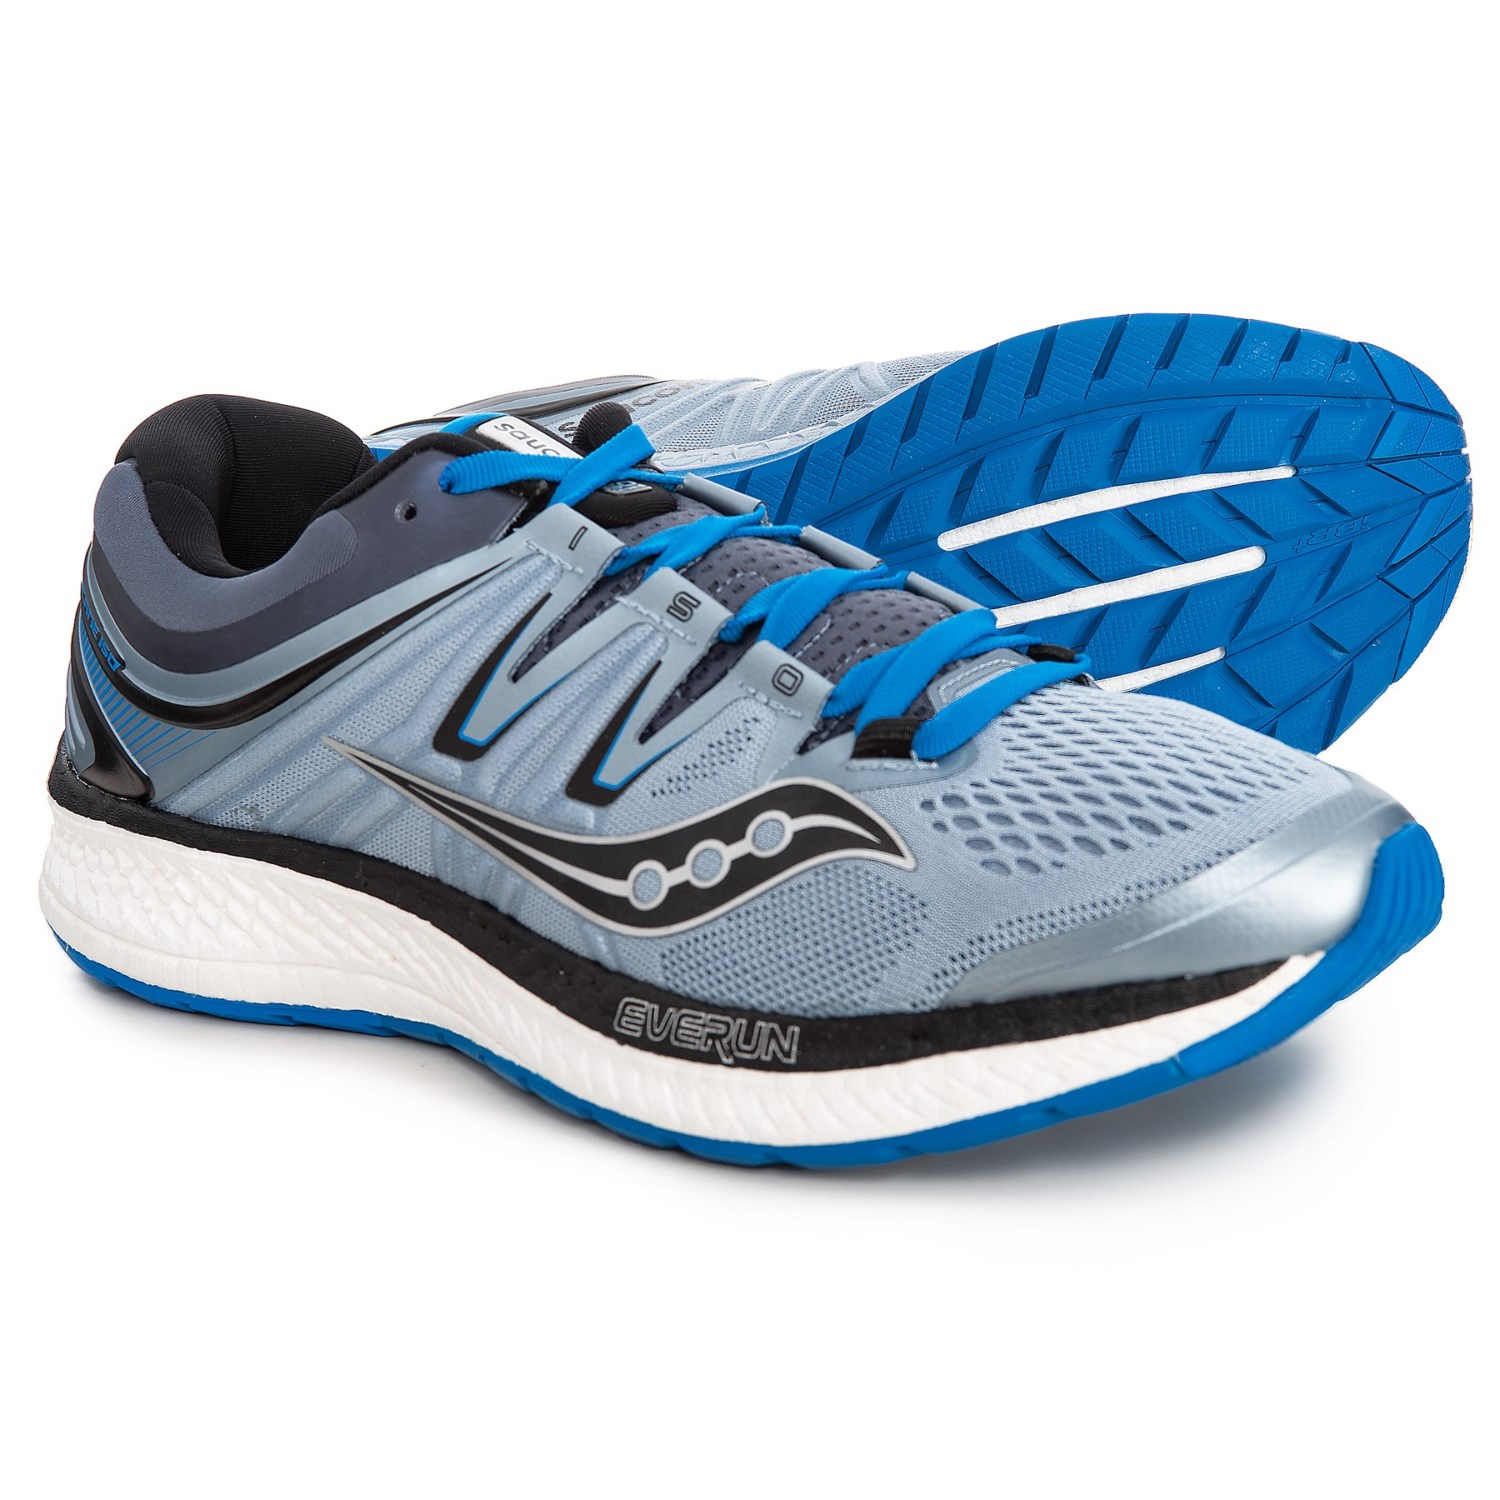 c798ccf26acb Saucony Hurricane ISO 4 Running Shoes (For Men) in Grey Blue Black